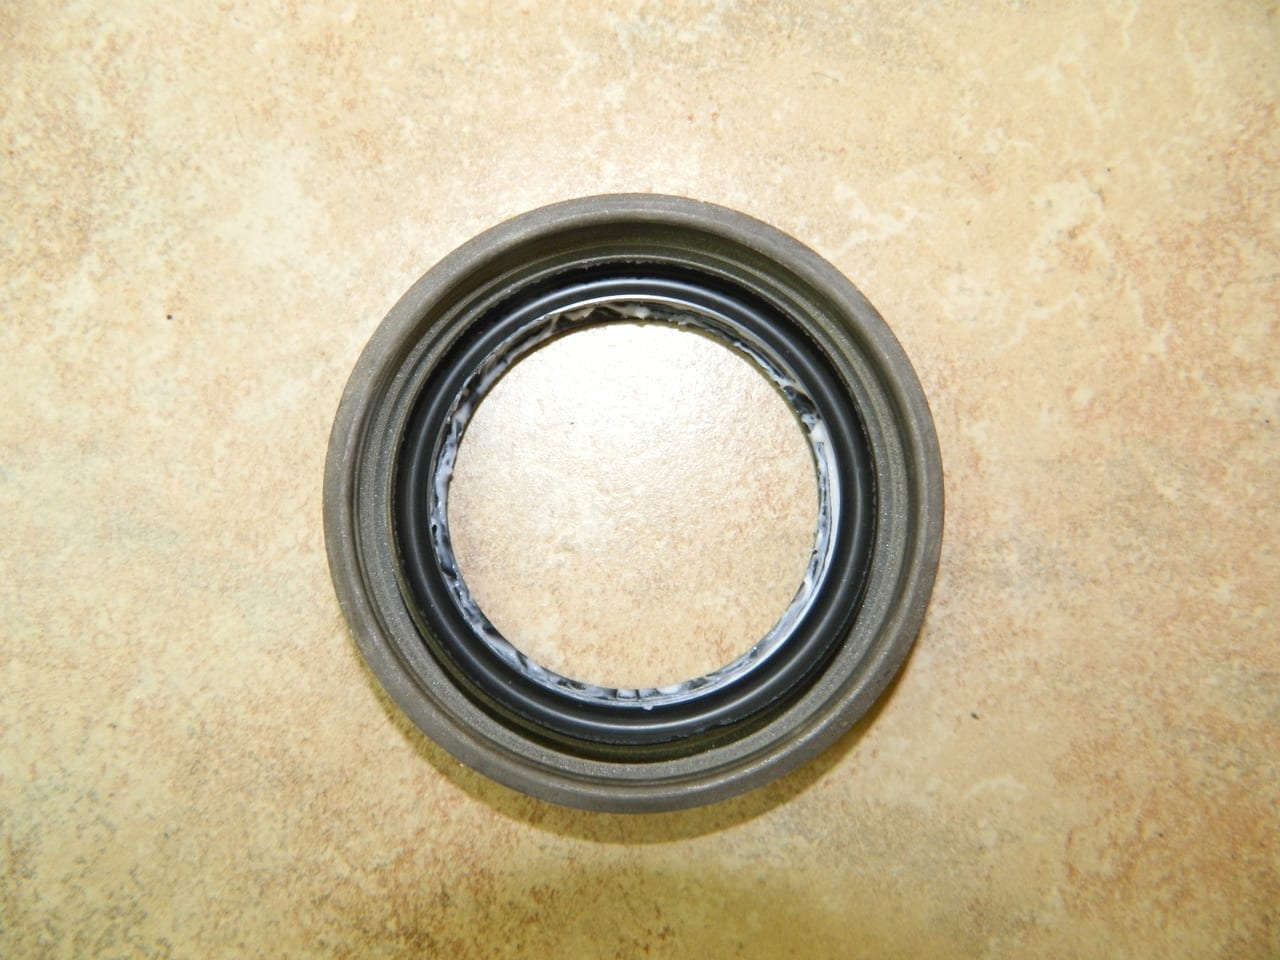 AAM Rear Pinion Seal 2010+ Camaro 8.6 IRS Chevy GM 218MM 218 MM ZETA